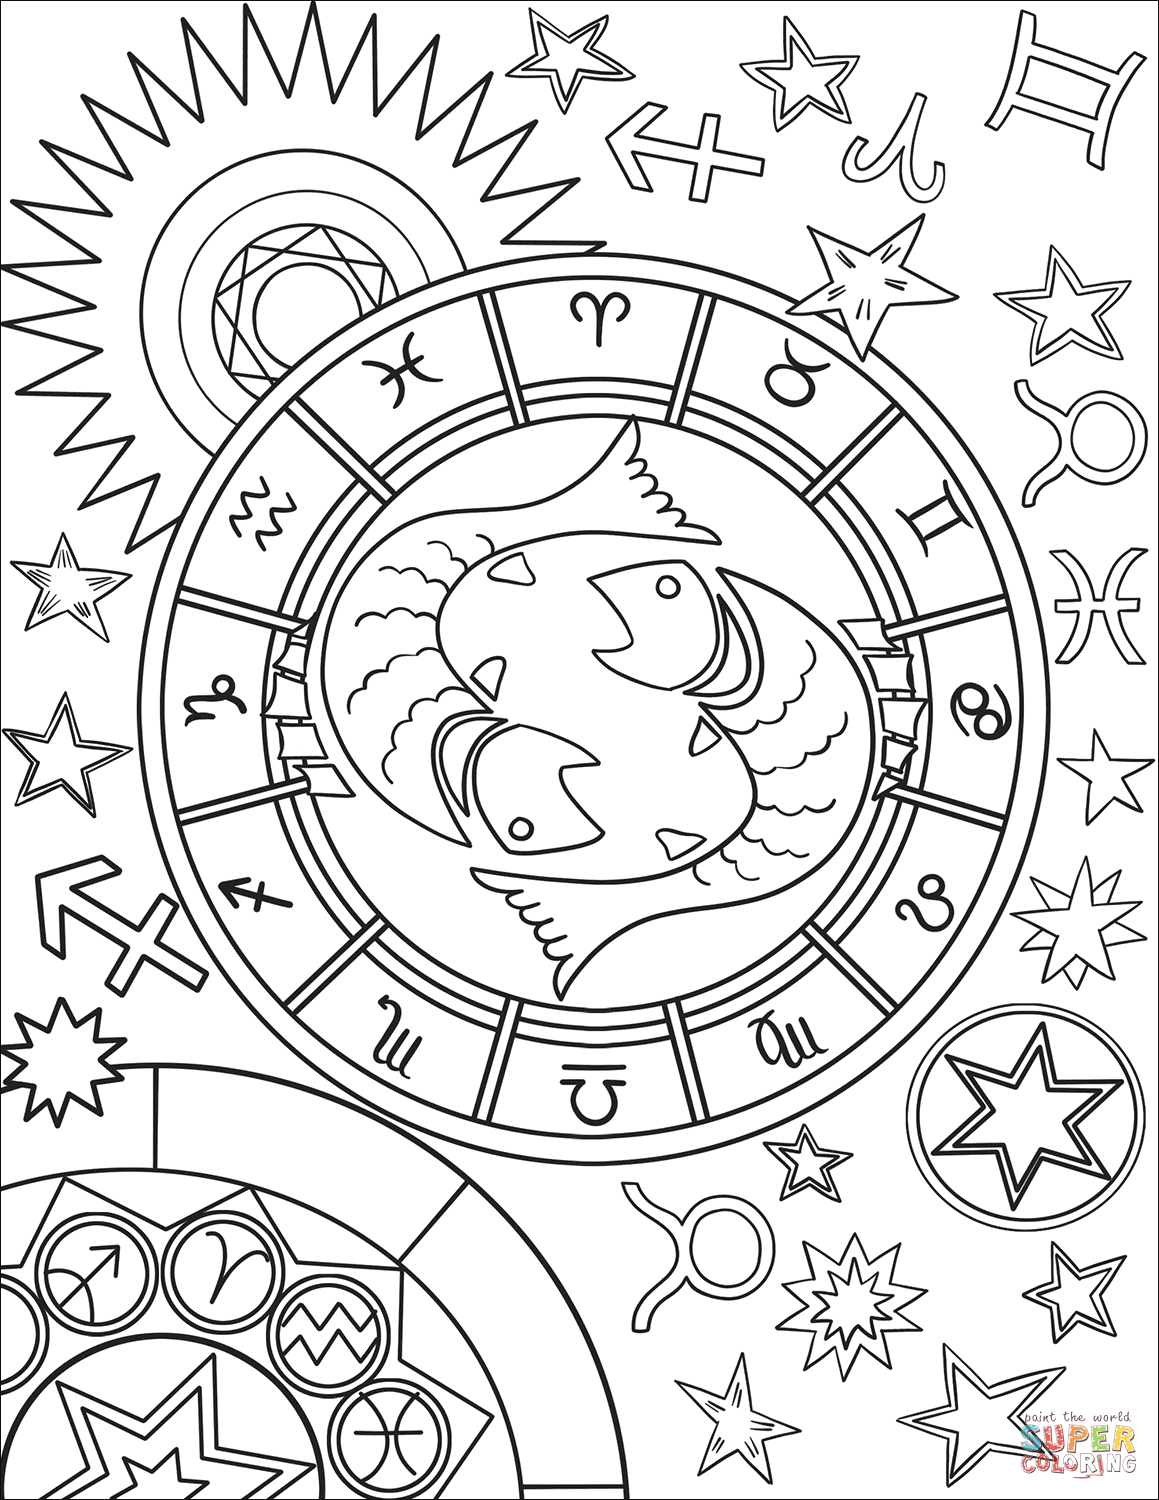 Zodiac coloring pages yahoo image search results